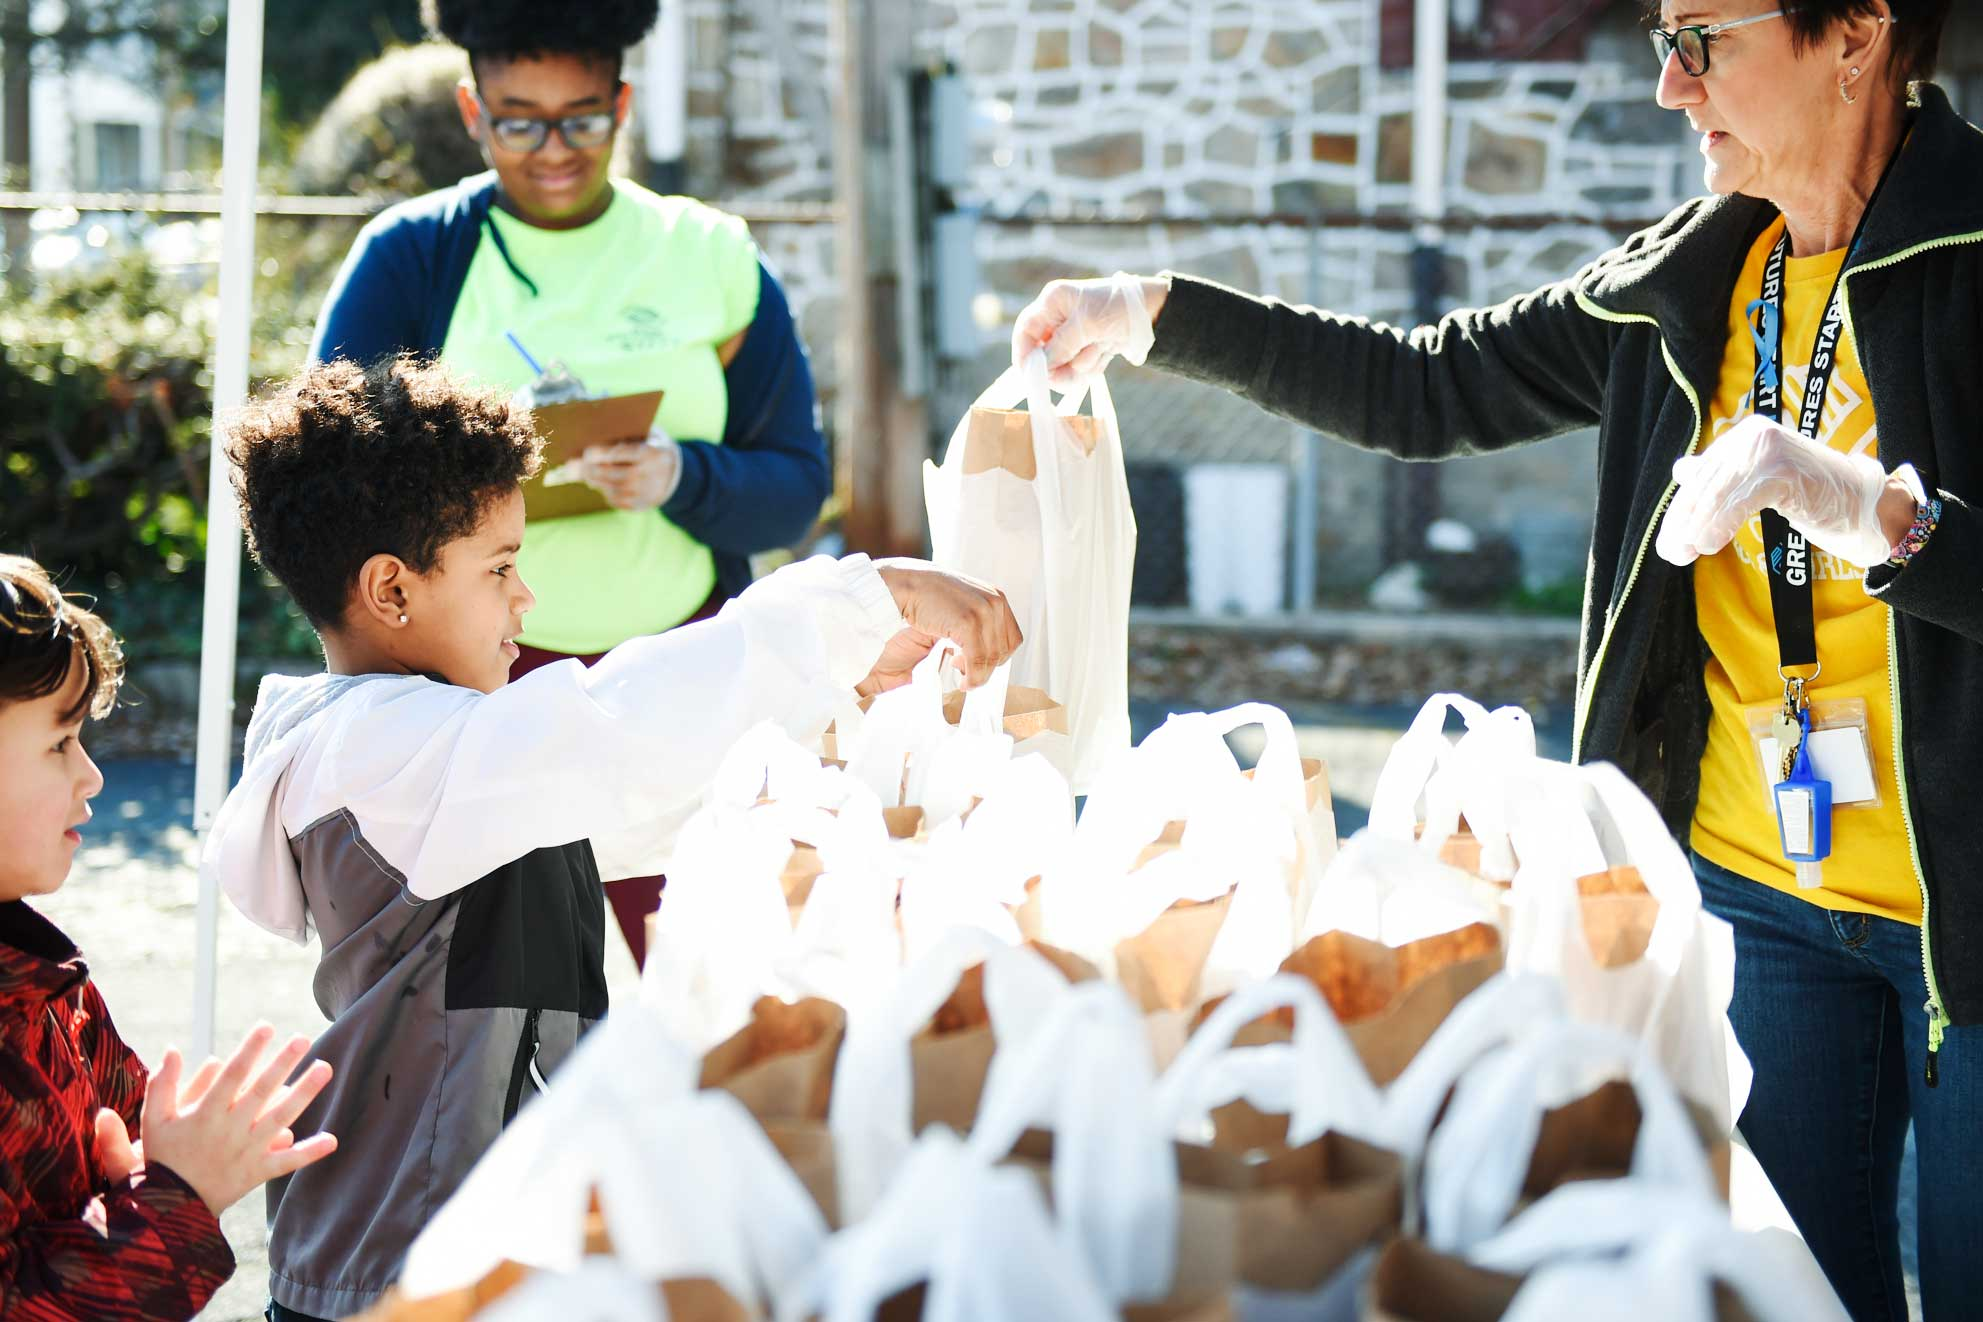 Two boys handles plastic bags of food from a woman at a table filled with bagged lunches.